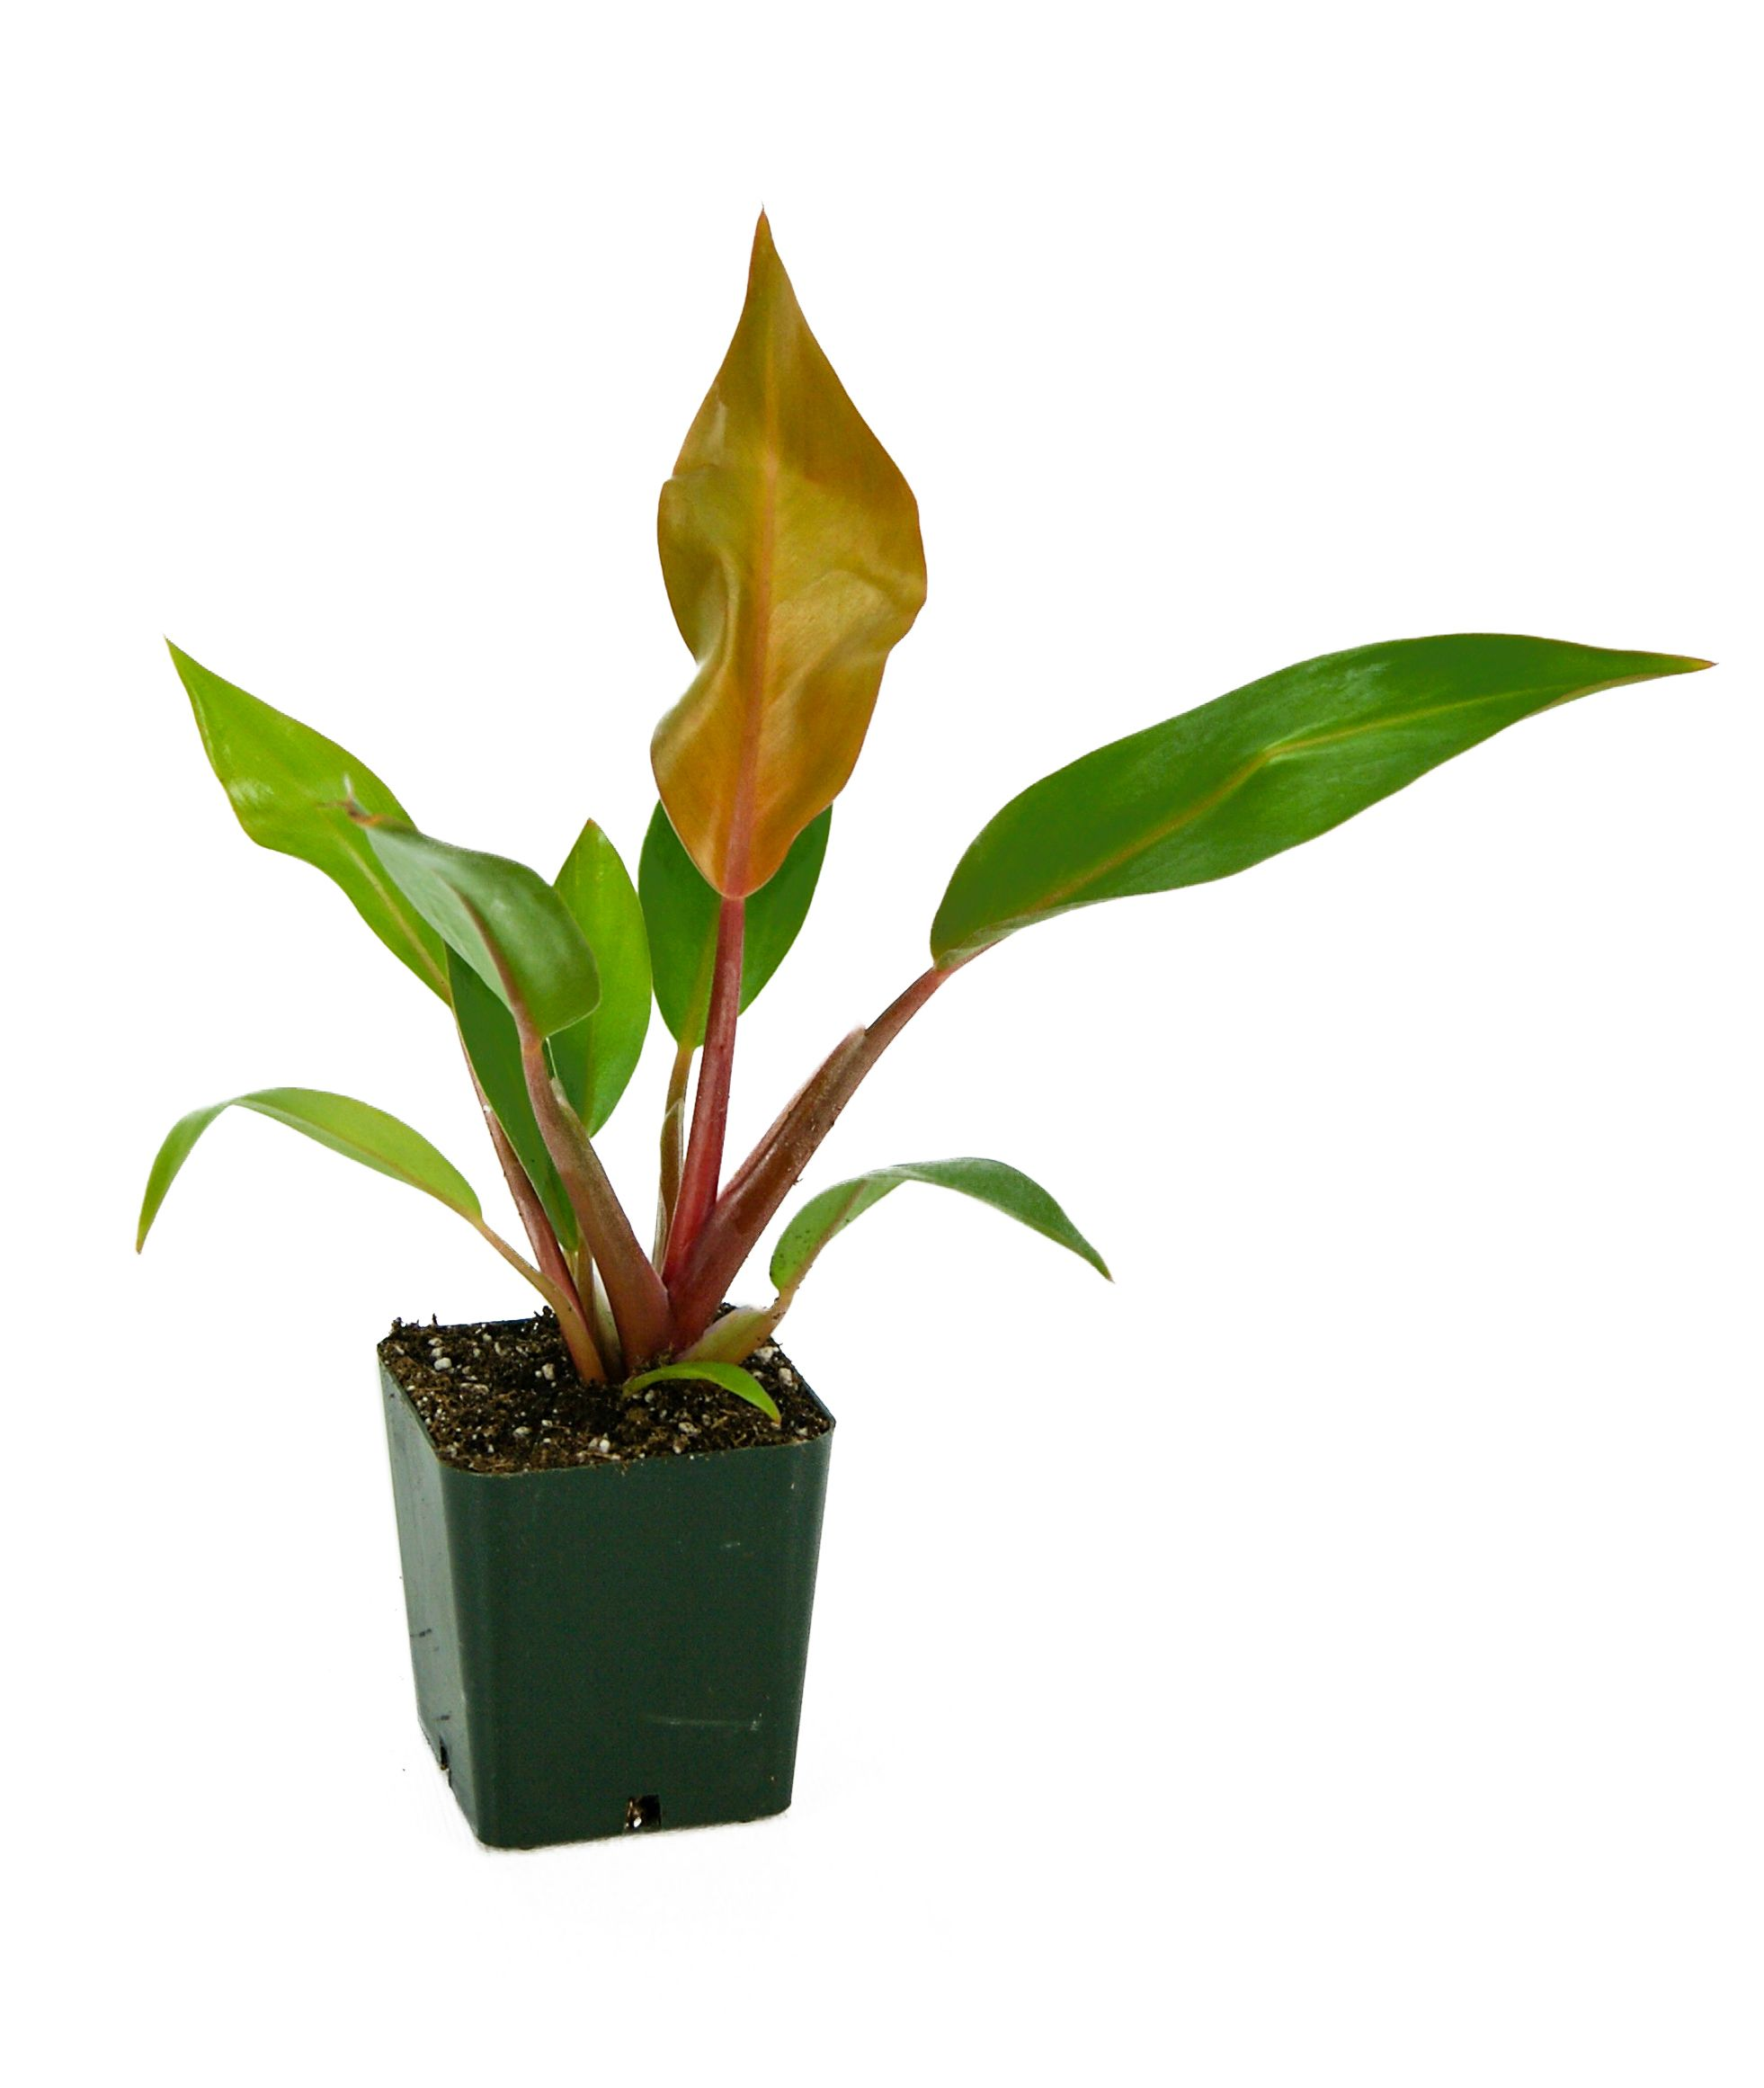 Live Terrarium Plants For Sale At Josh S Frogs Are Animal Safe And